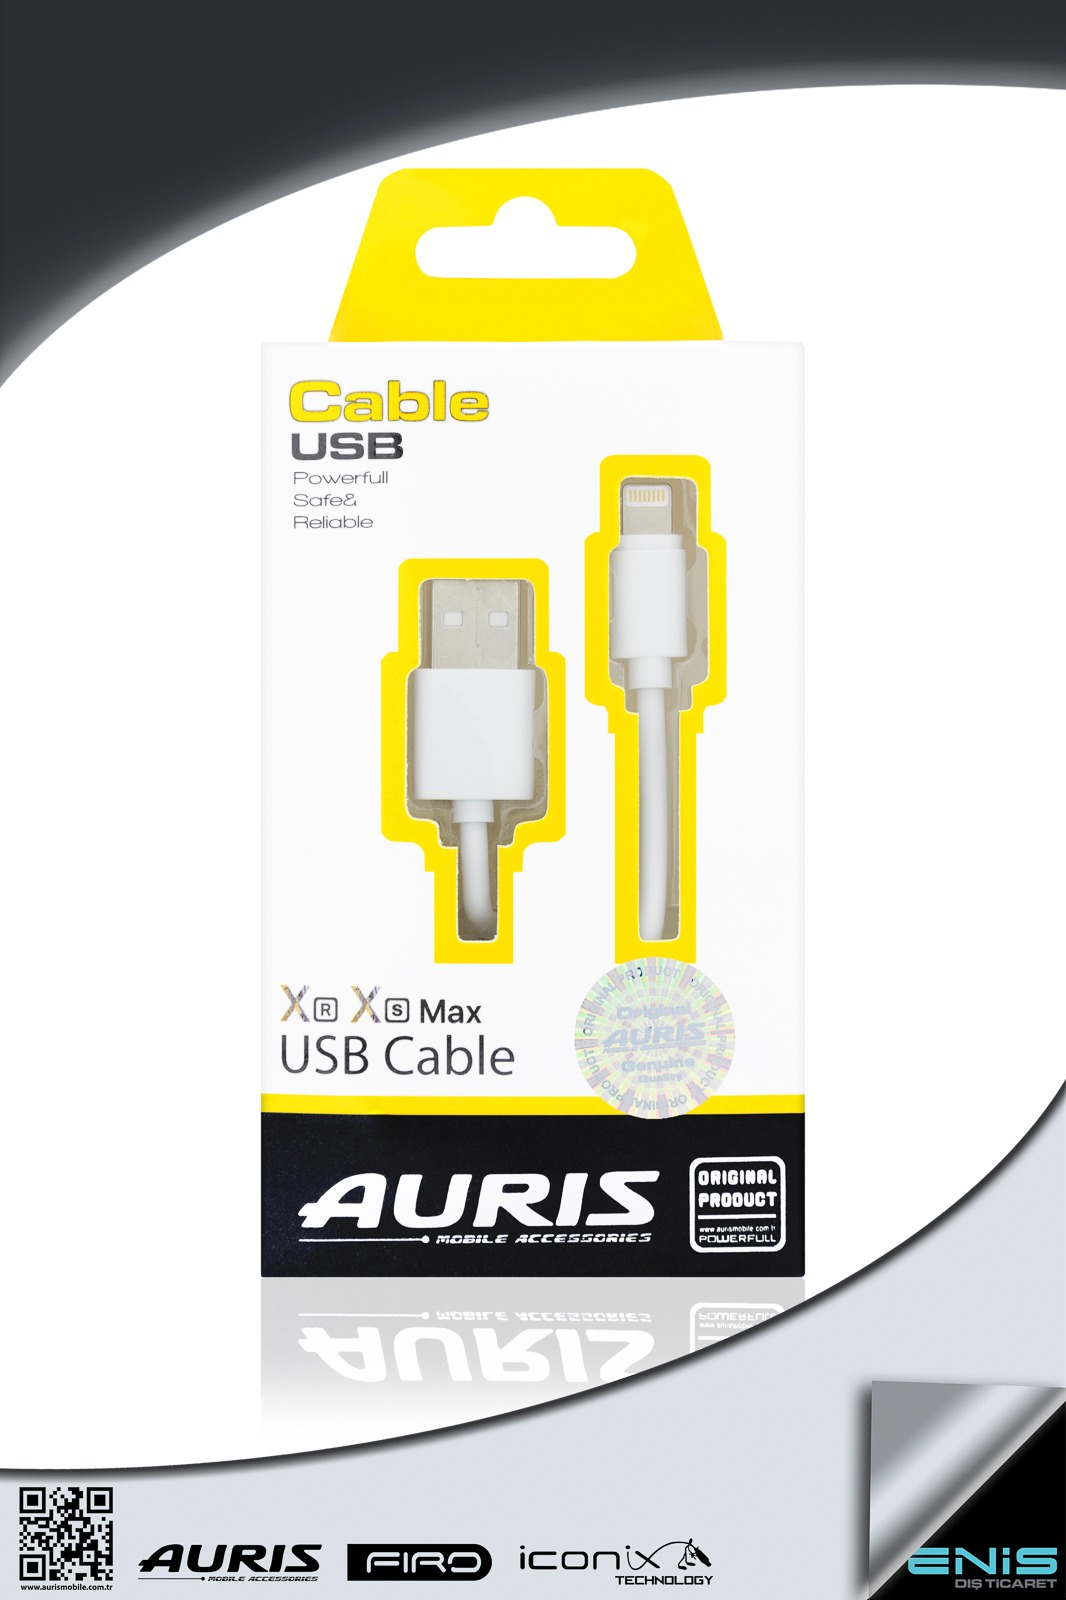 XR-XS MAX USB CABLE